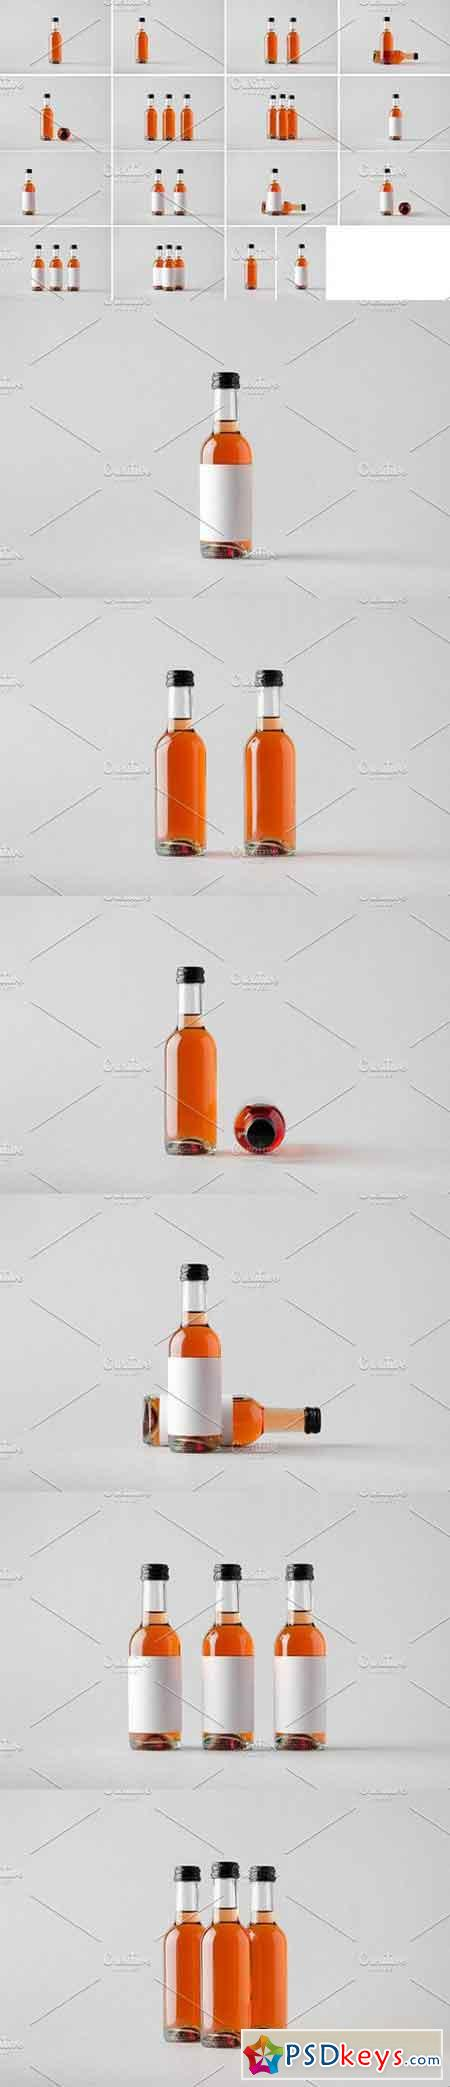 Wine Bottle Mock-Up Photo Bundle 1328829